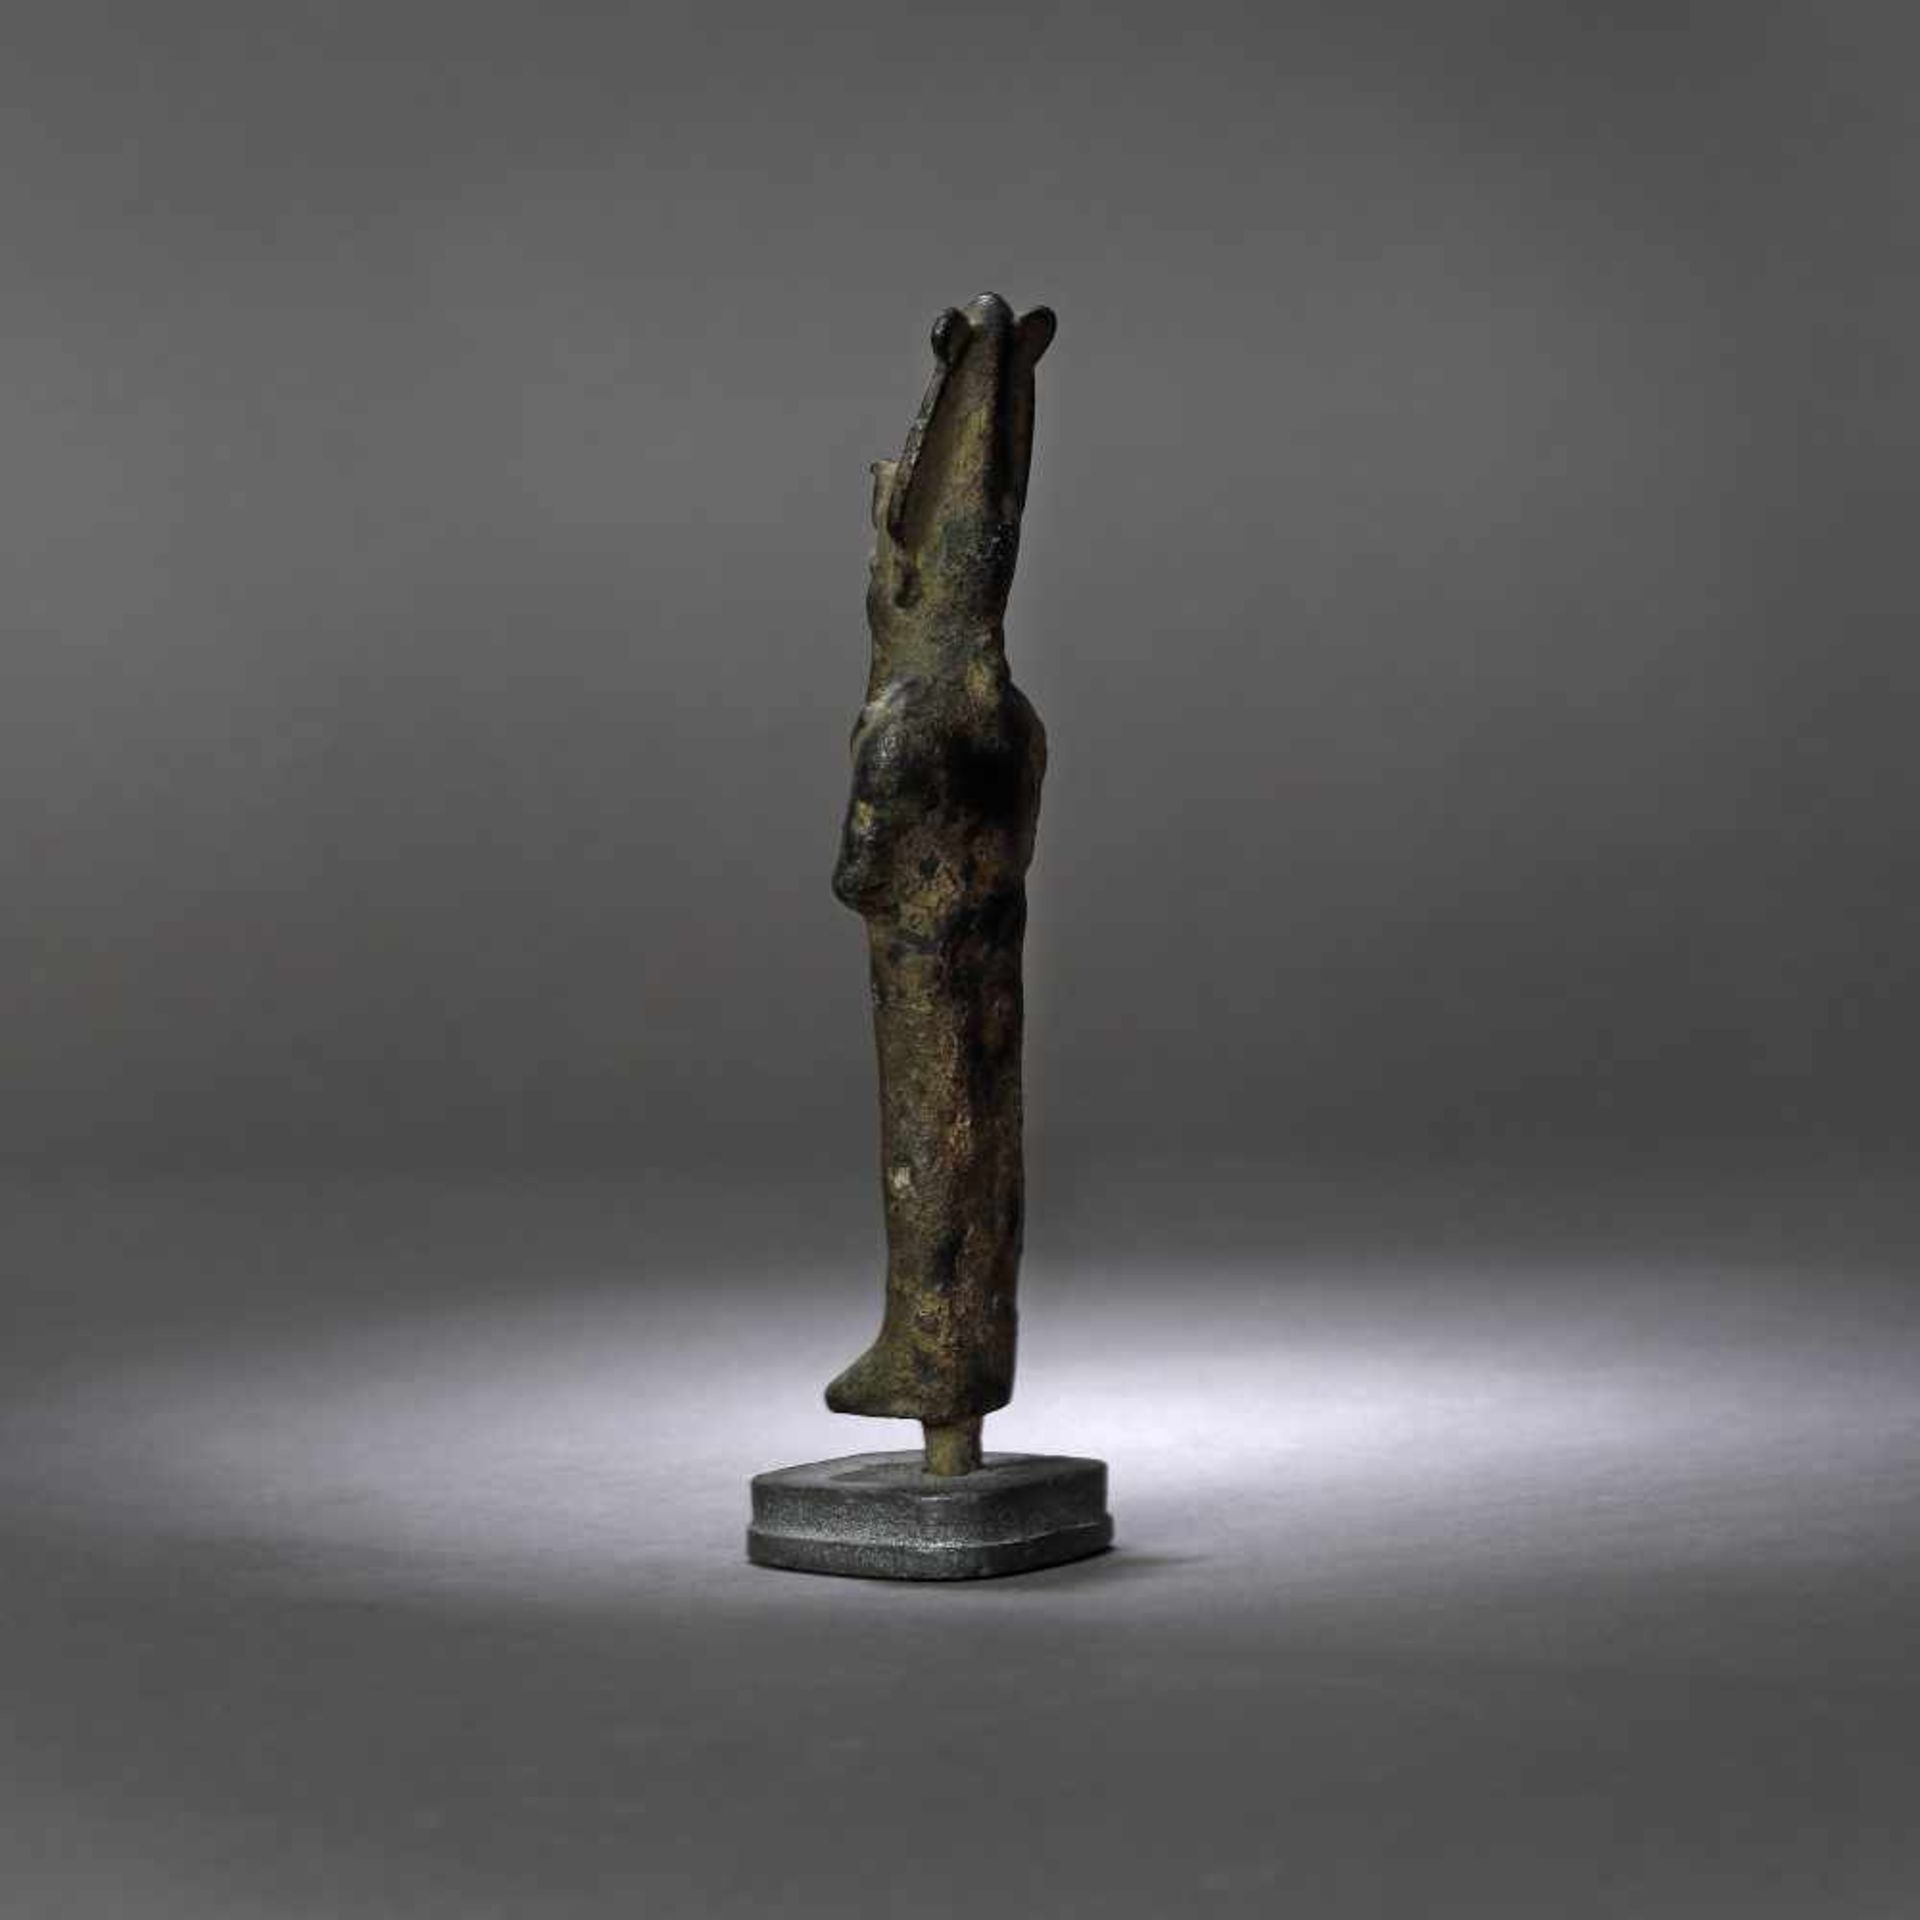 Egyptian bronze statuette, representing Osiris (god of life, afterlife and resurrection), probably t - Bild 3 aus 3